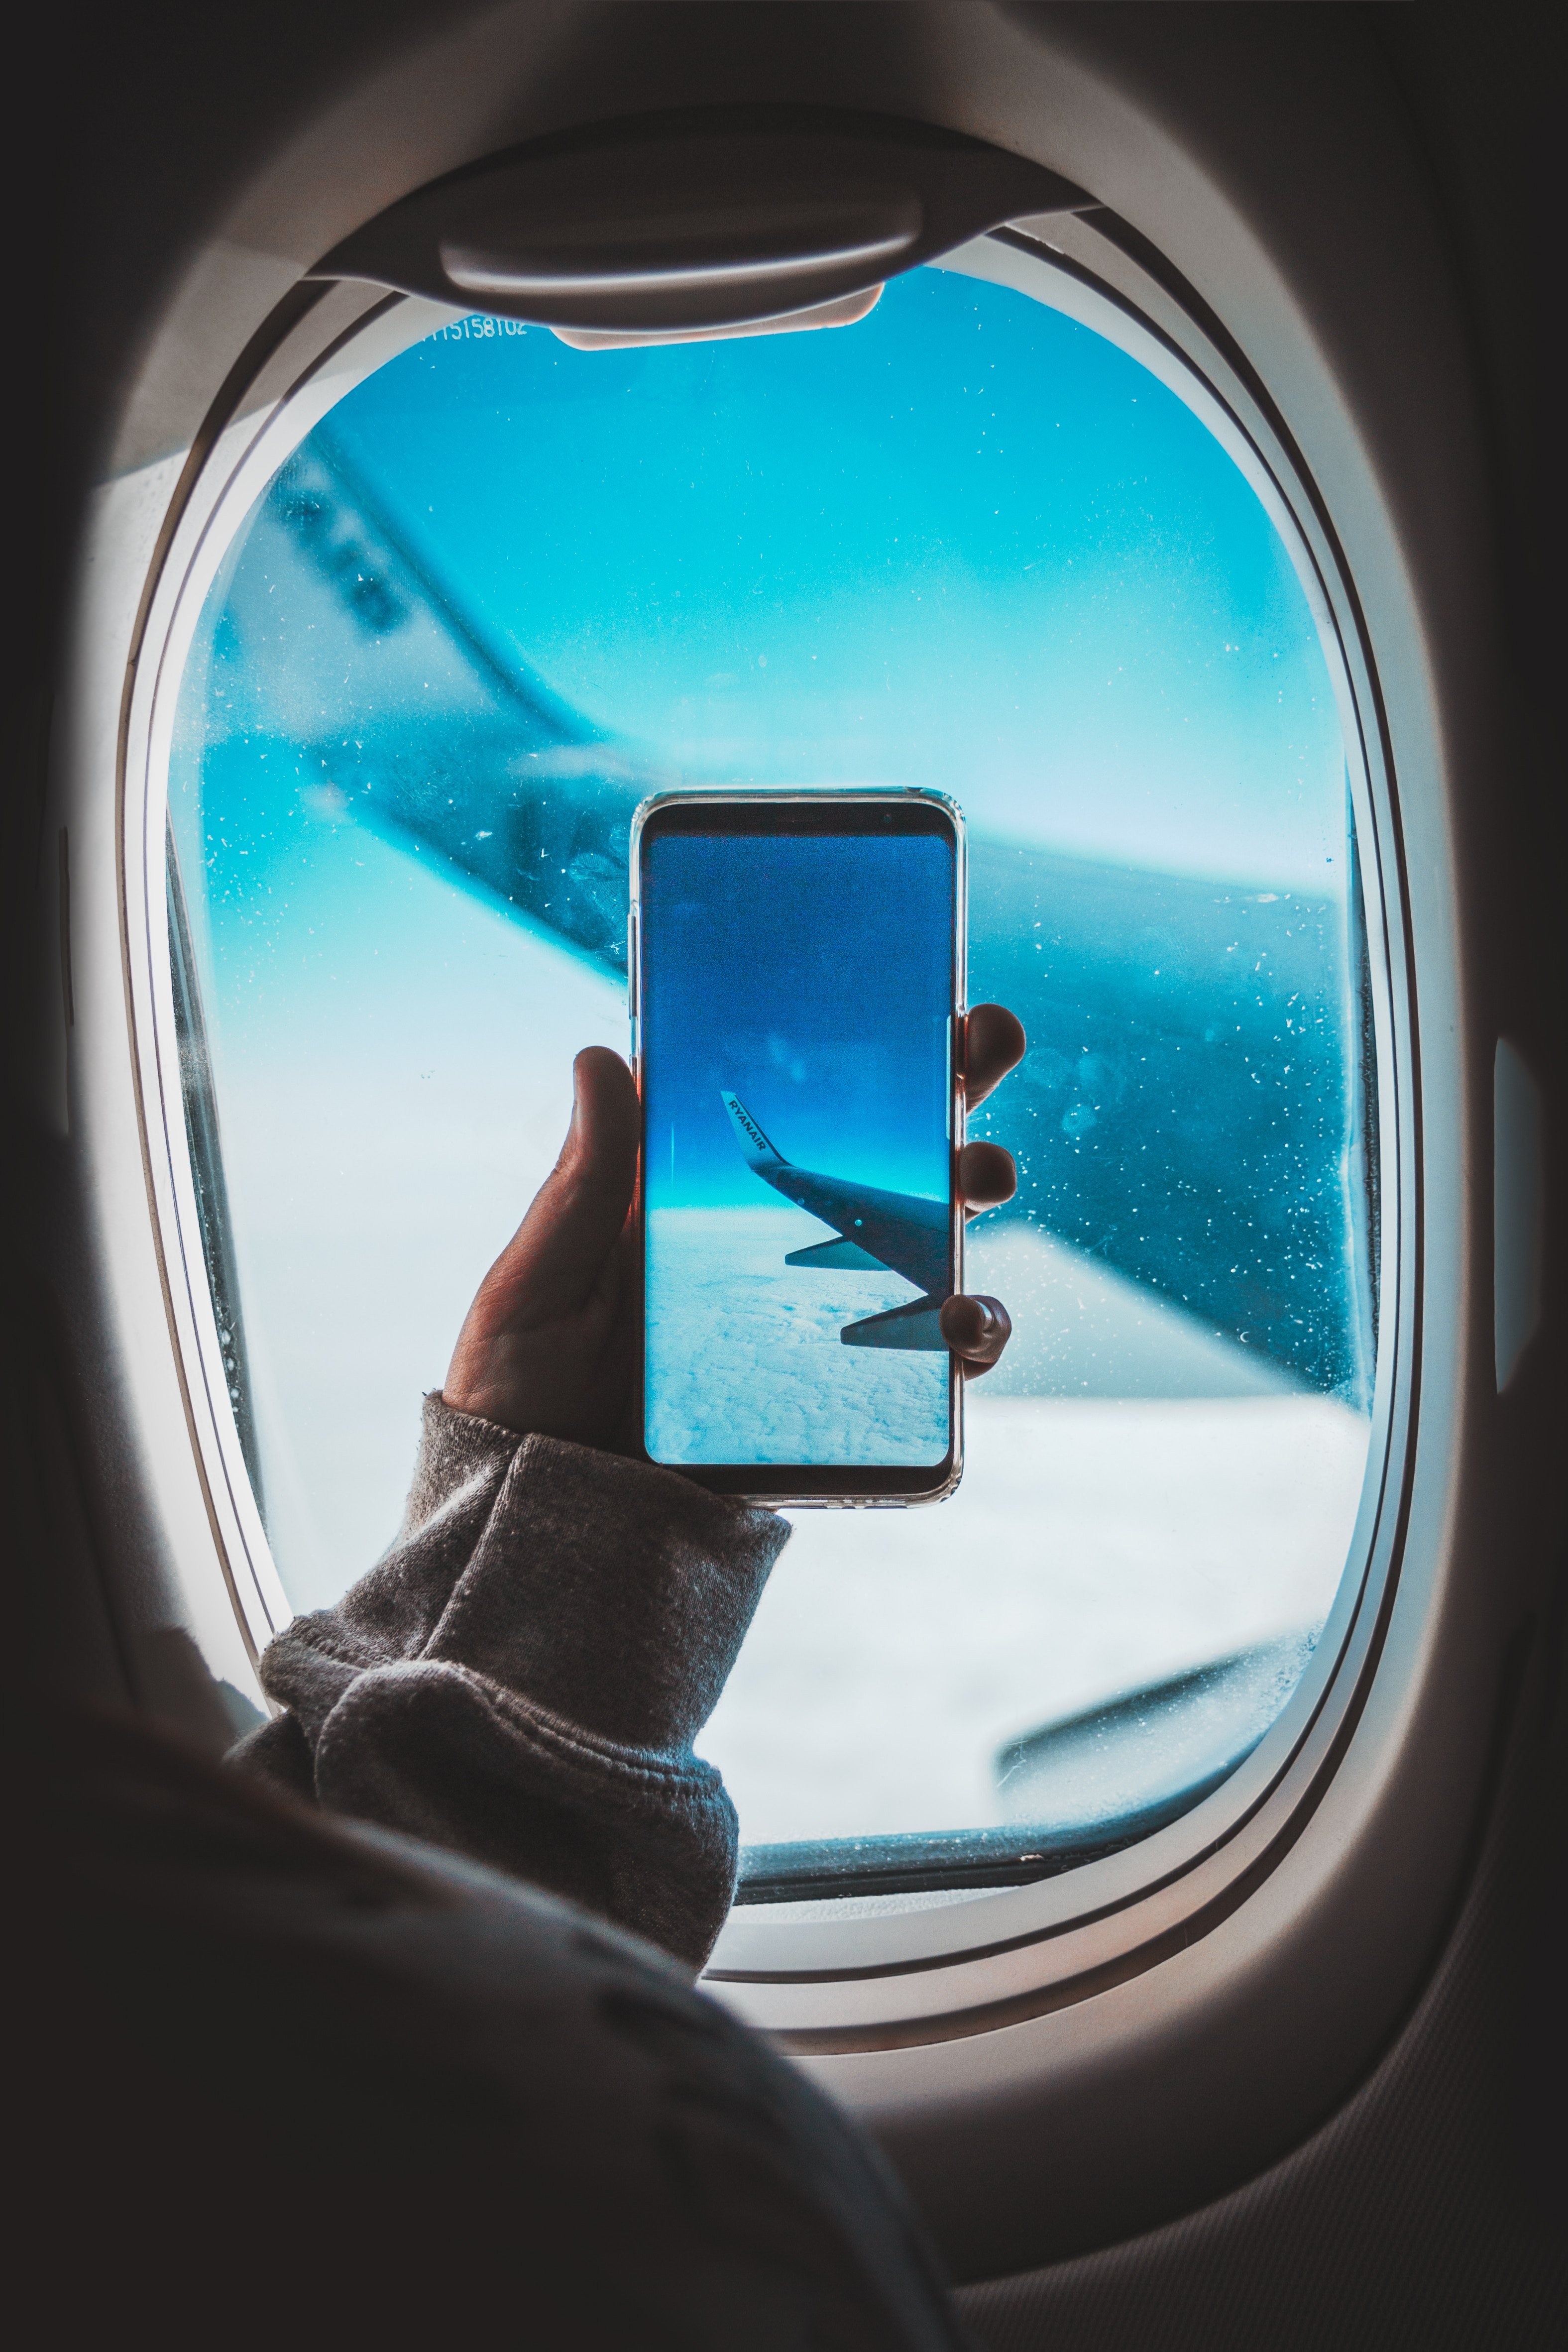 153116 Screensavers and Wallpapers Hand for phone. Download Miscellanea, Miscellaneous, Porthole, Plane, Airplane, Wing, Hand, Smartphone pictures for free